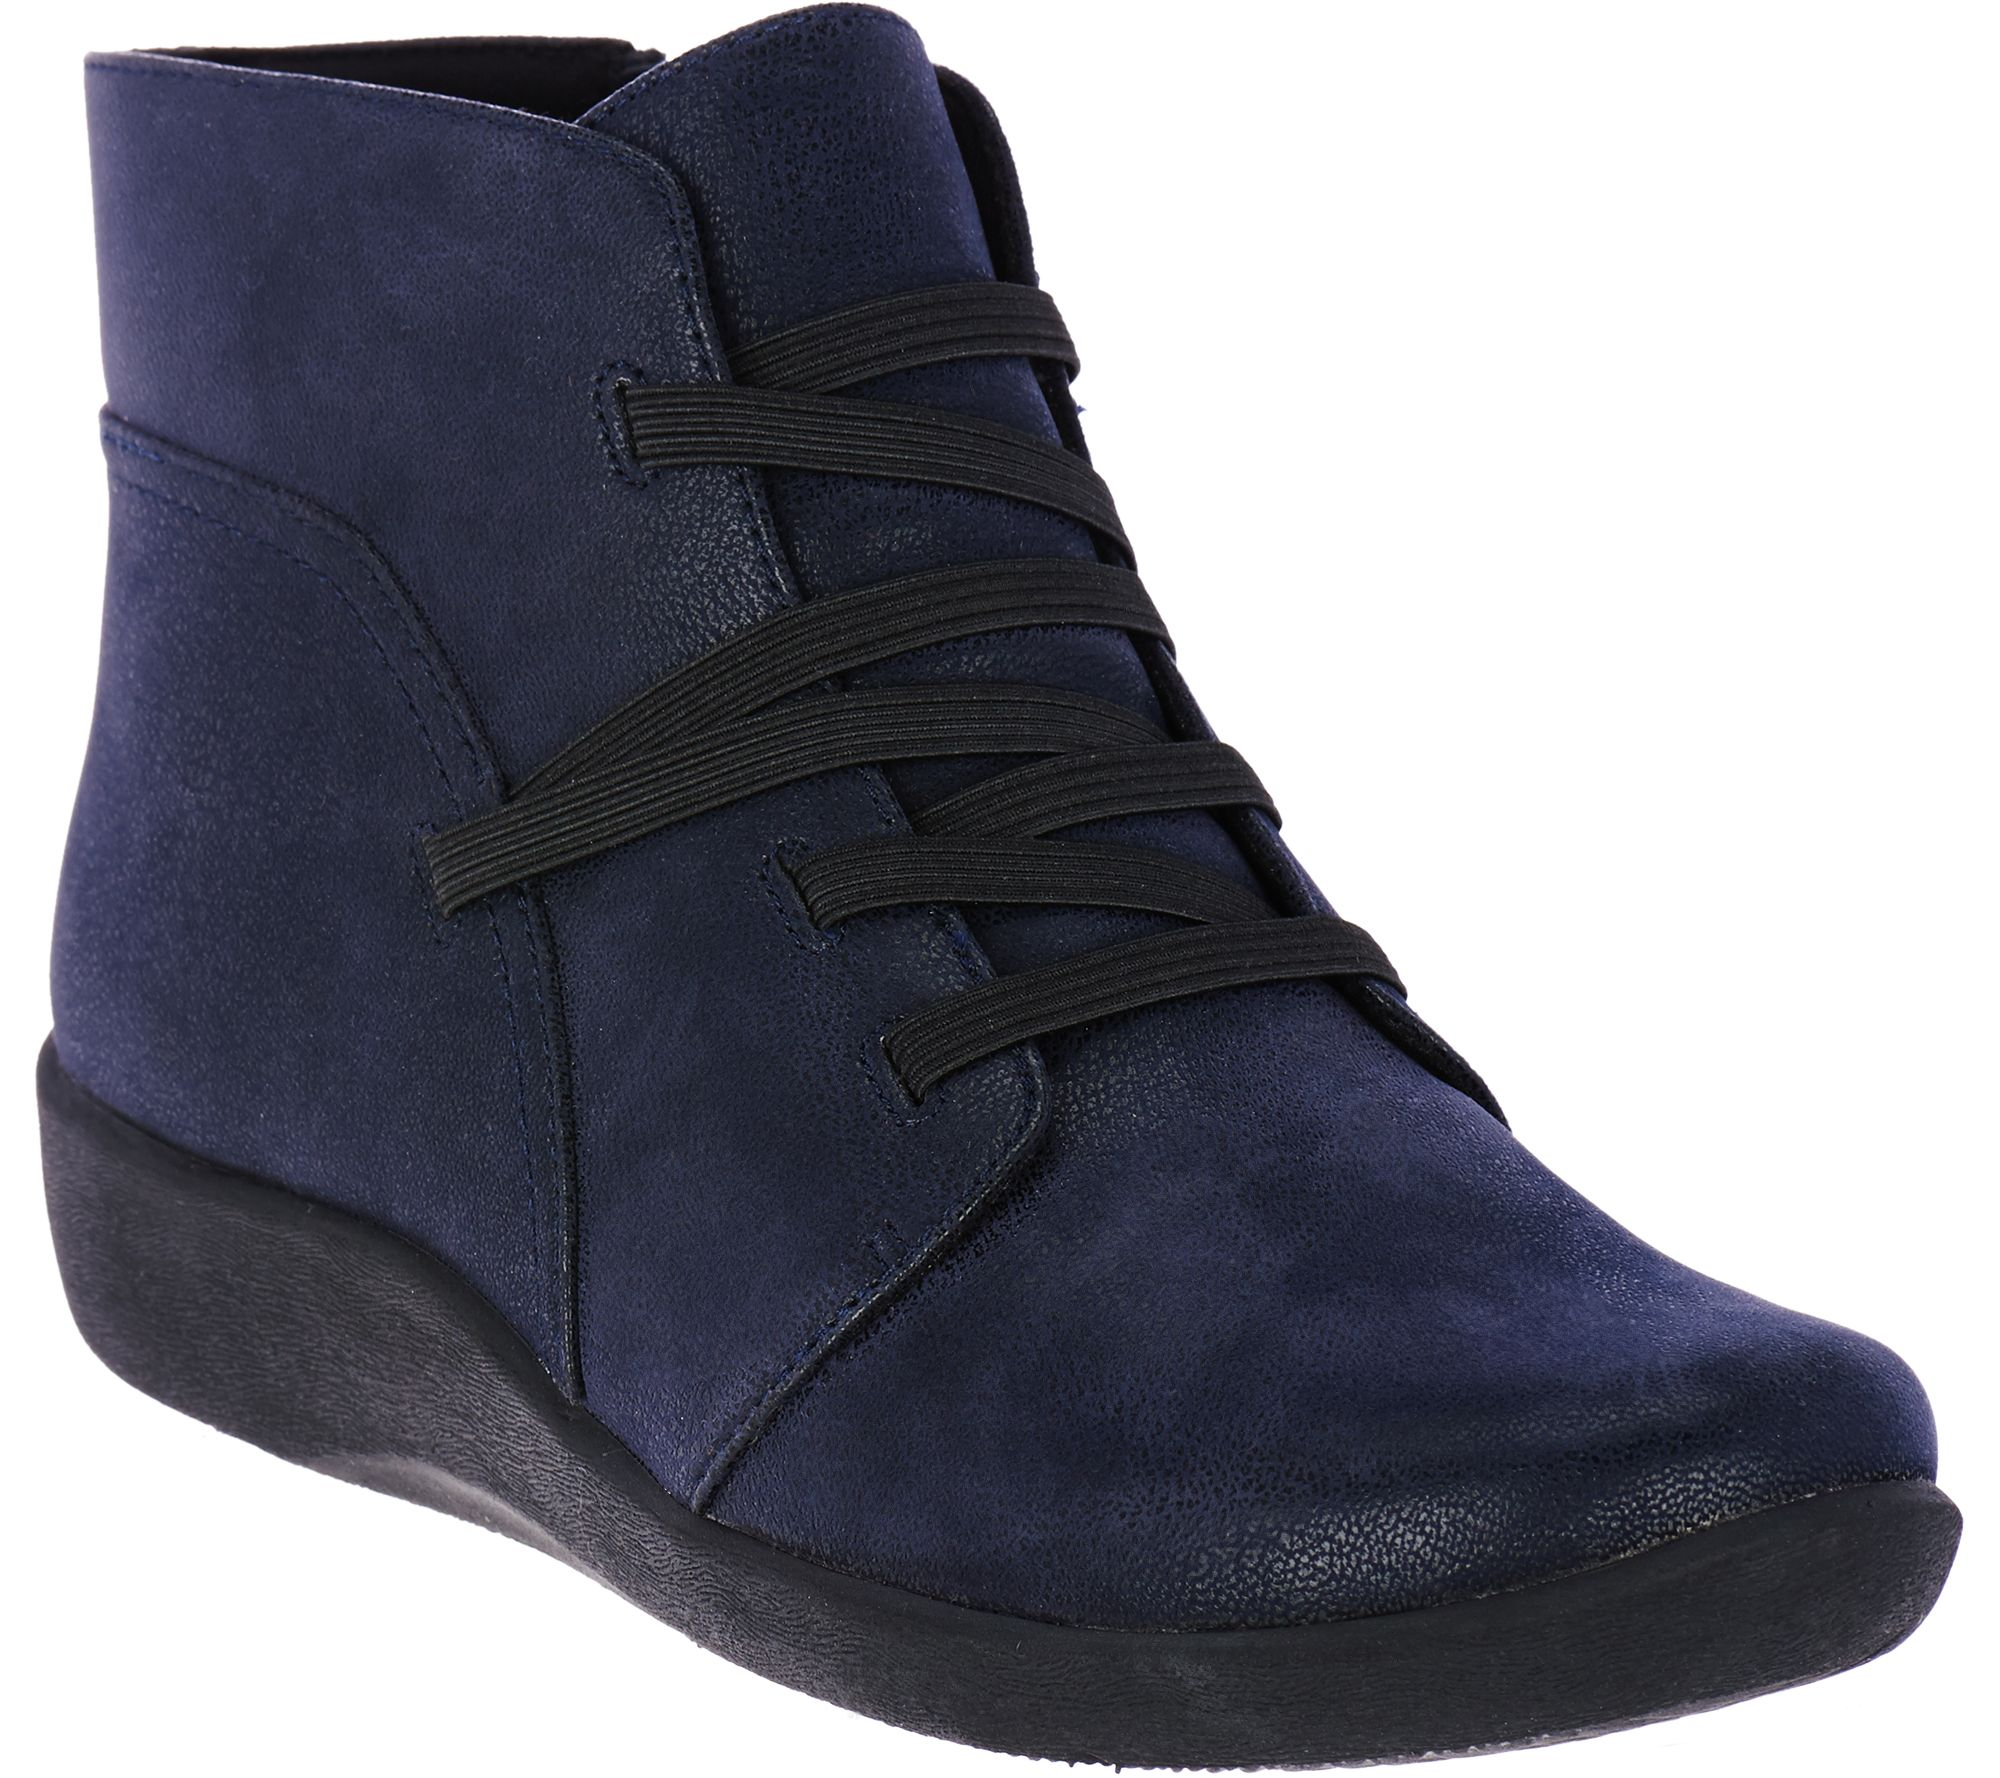 Quot As Is Quot Clarks Cloud Steppers Gore Lace Up Boots Sillian